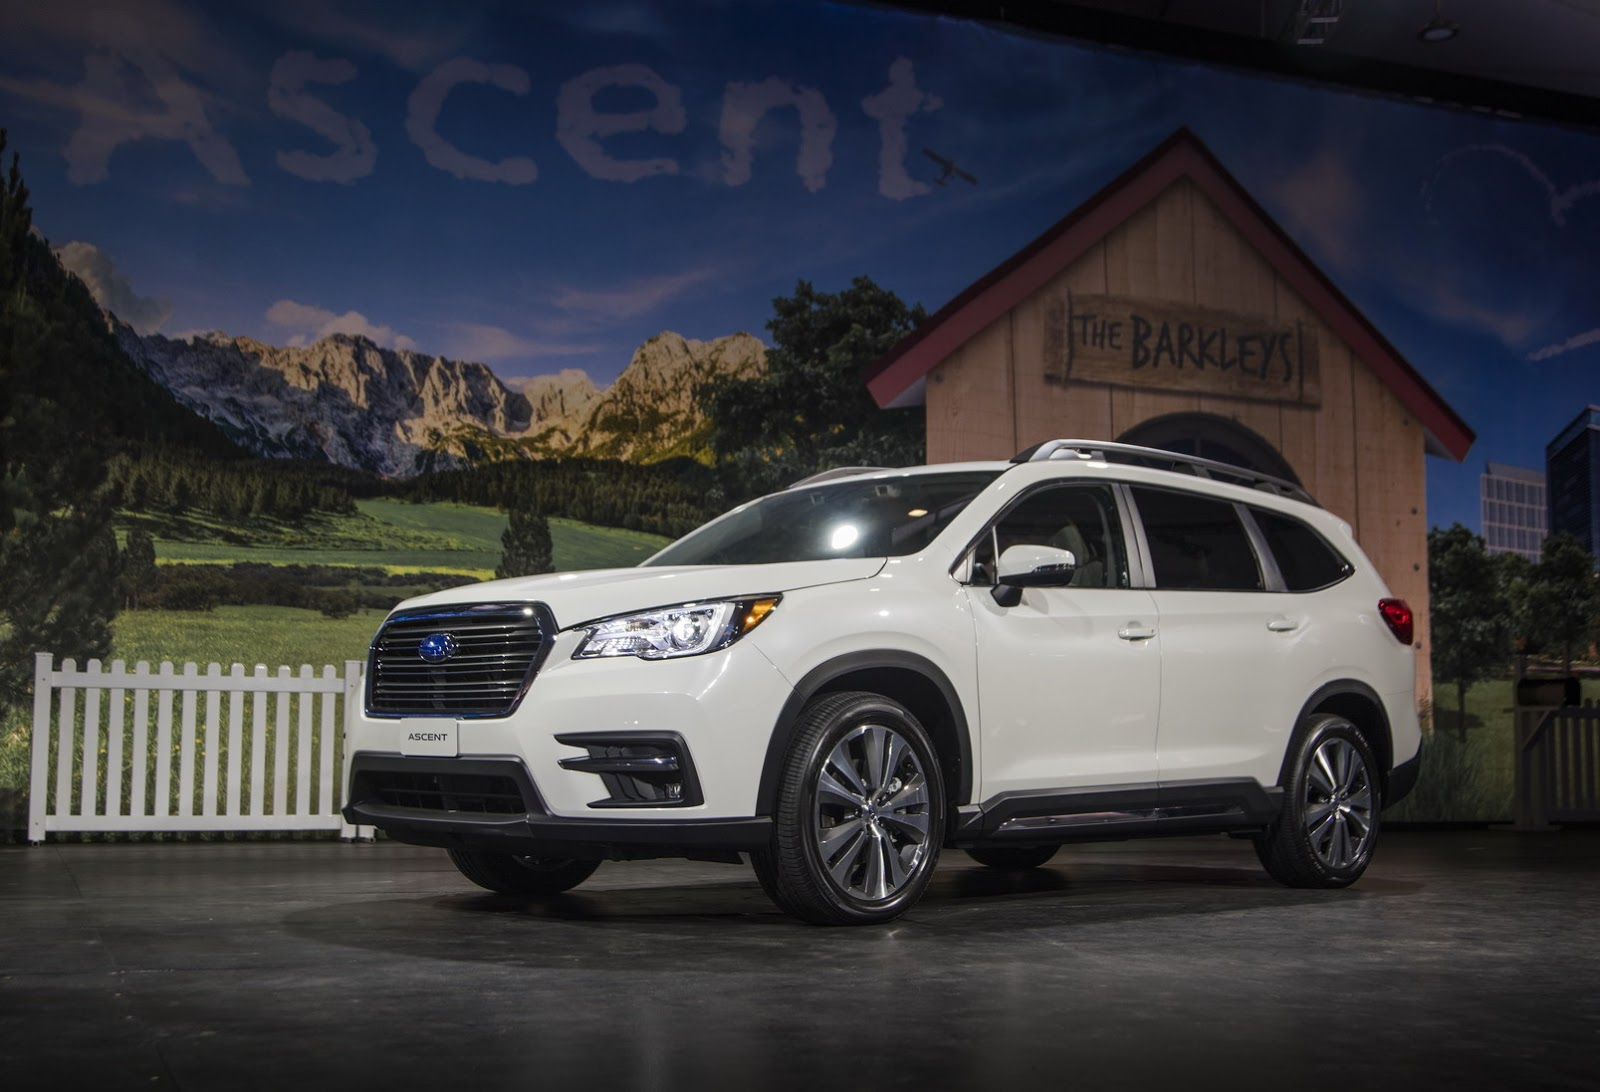 2019 Subaru Ascent Looks Like a Rival for the Honda Pilot - autoevolution